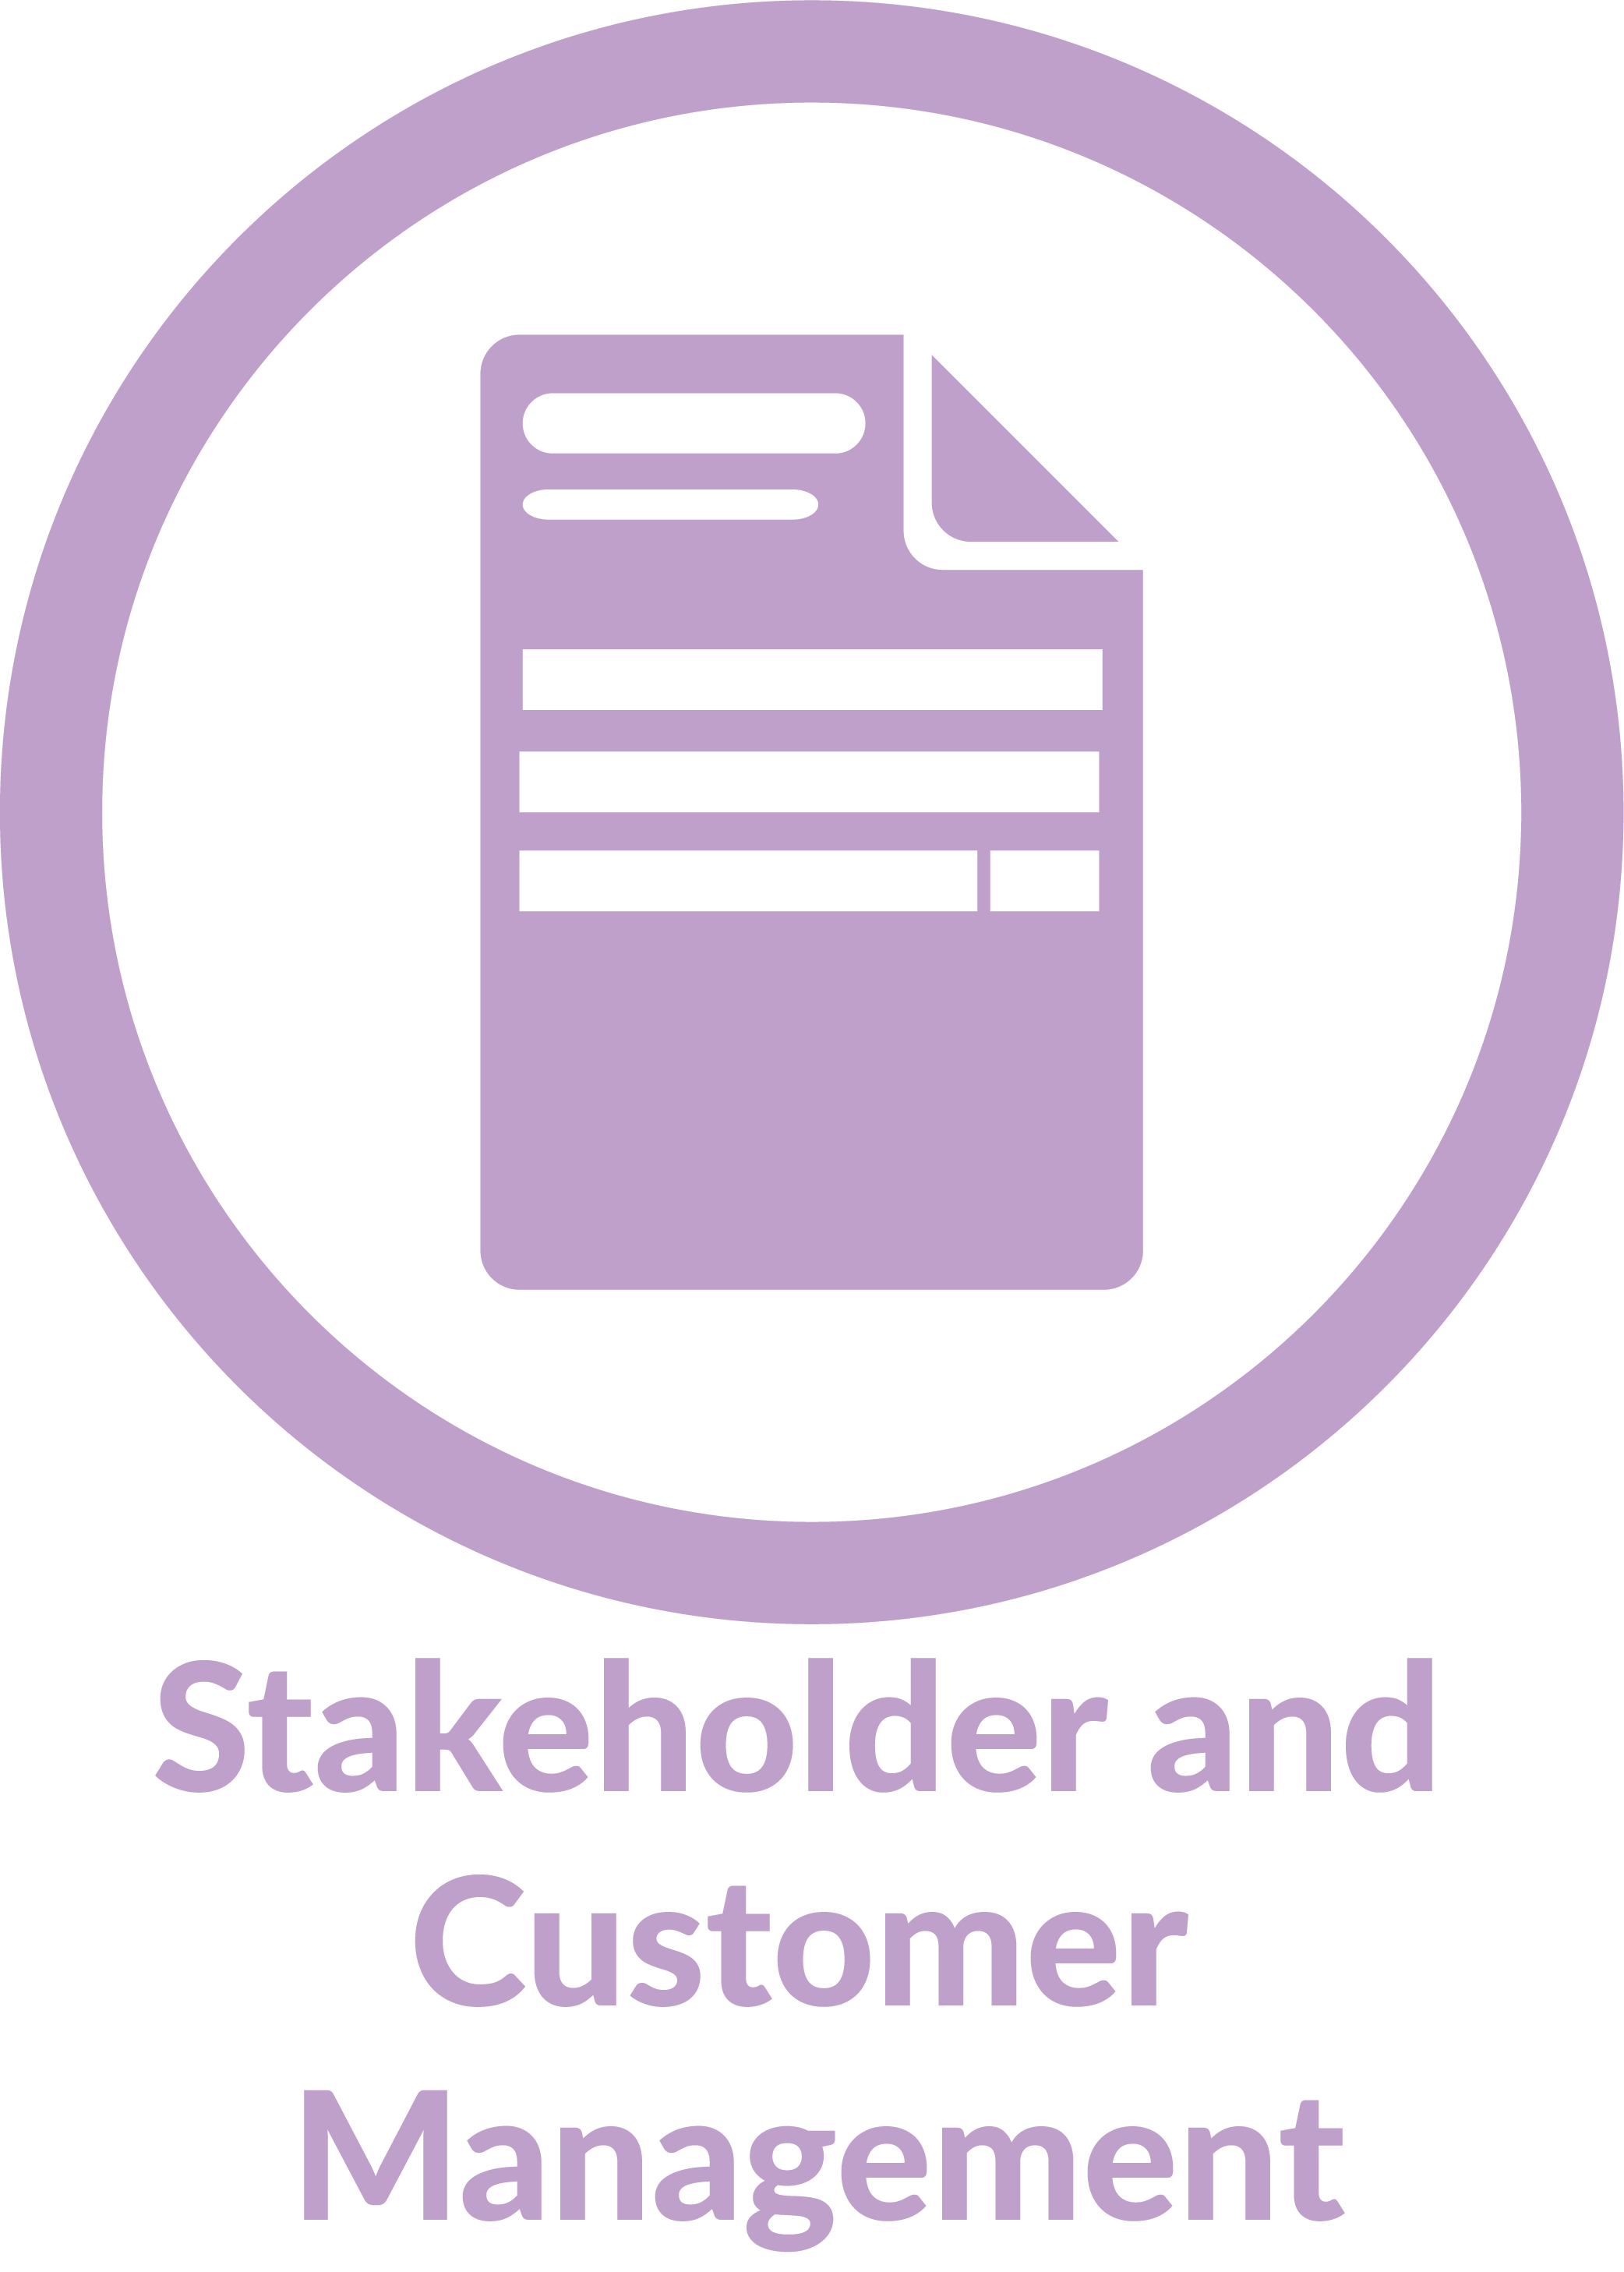 Super Admin logo and text Stakeholder and Customer